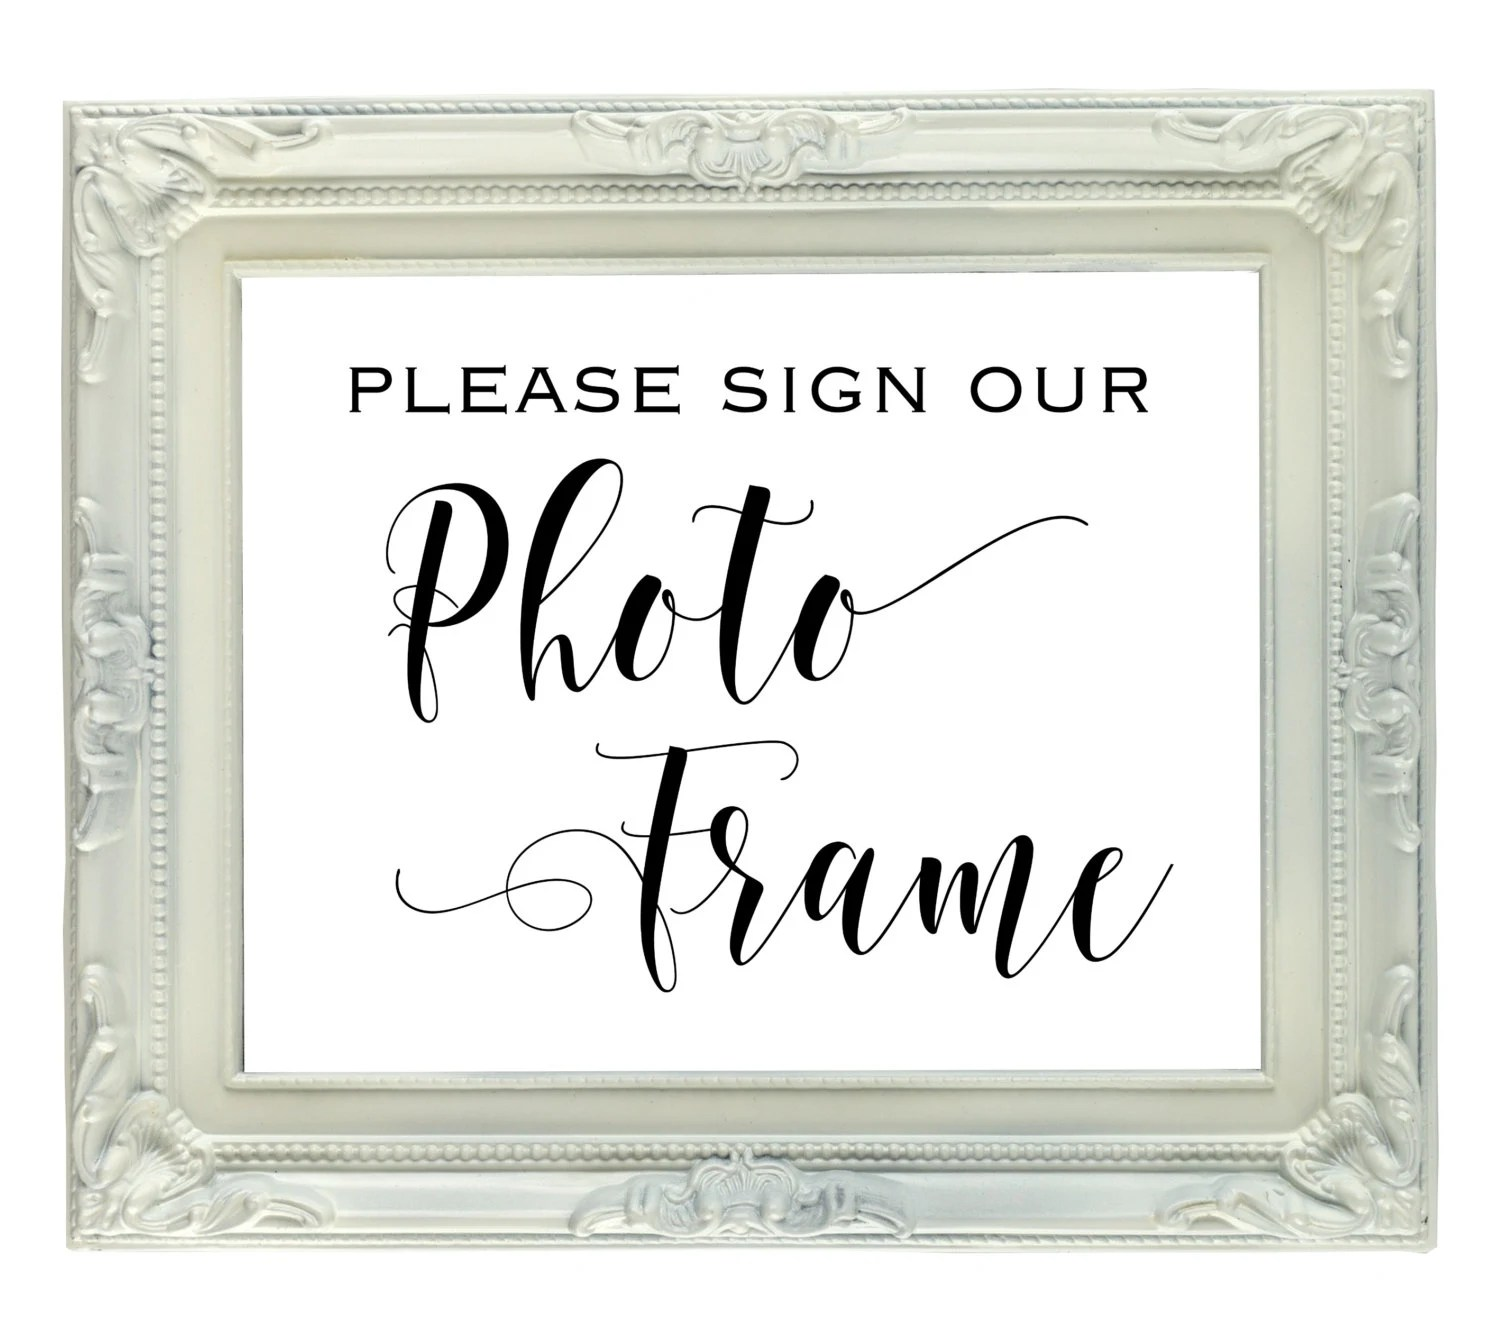 Photo Frame Guest Book sign 8x10 Instant Download Printable Etsy